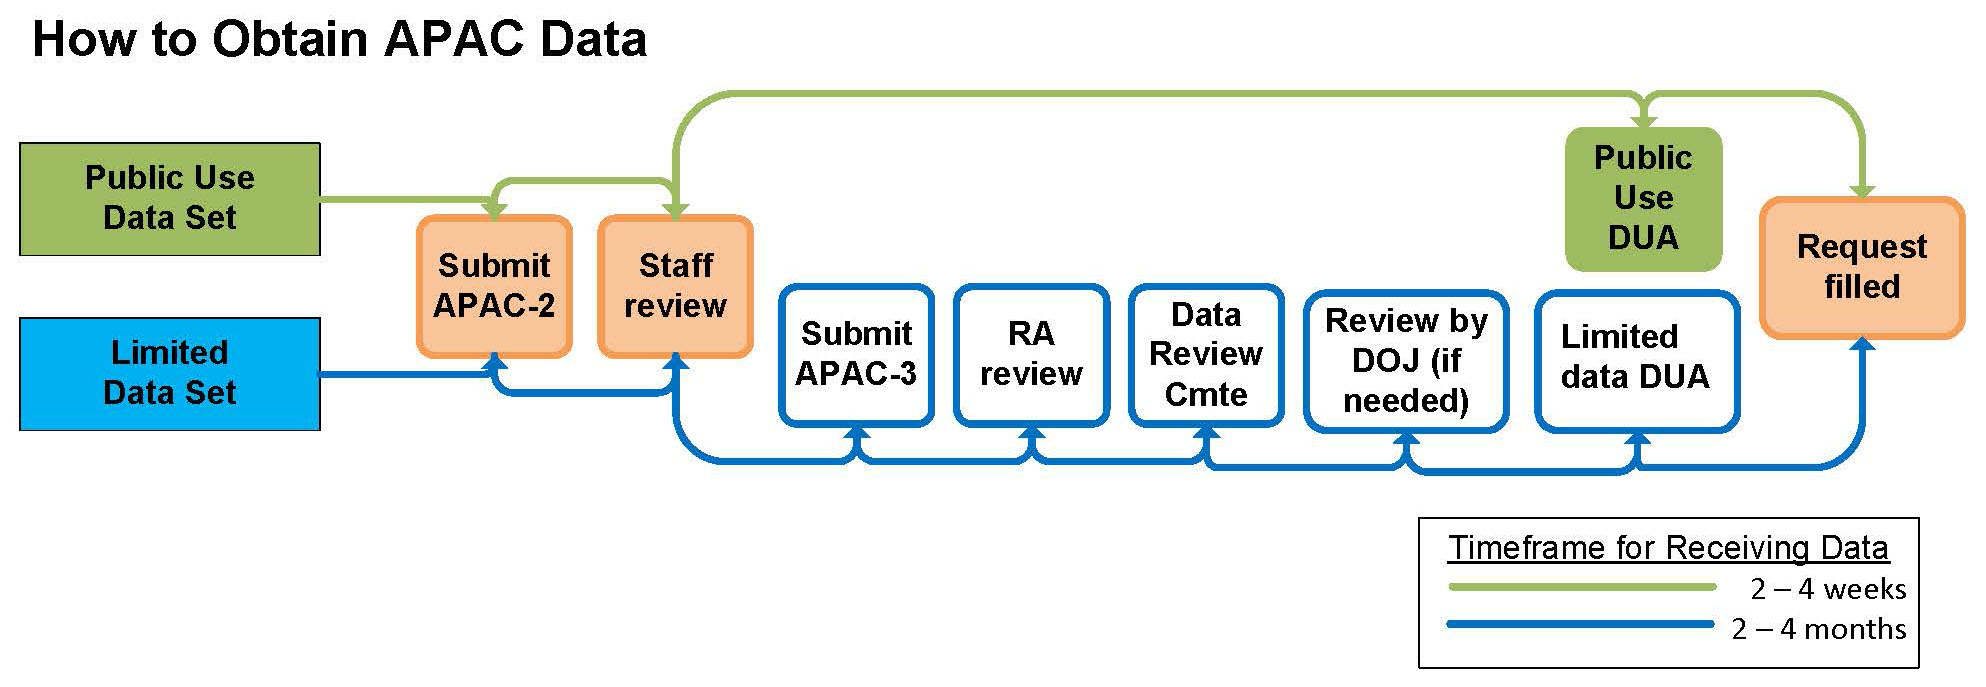 All Payer All Claims (APAC) data request process